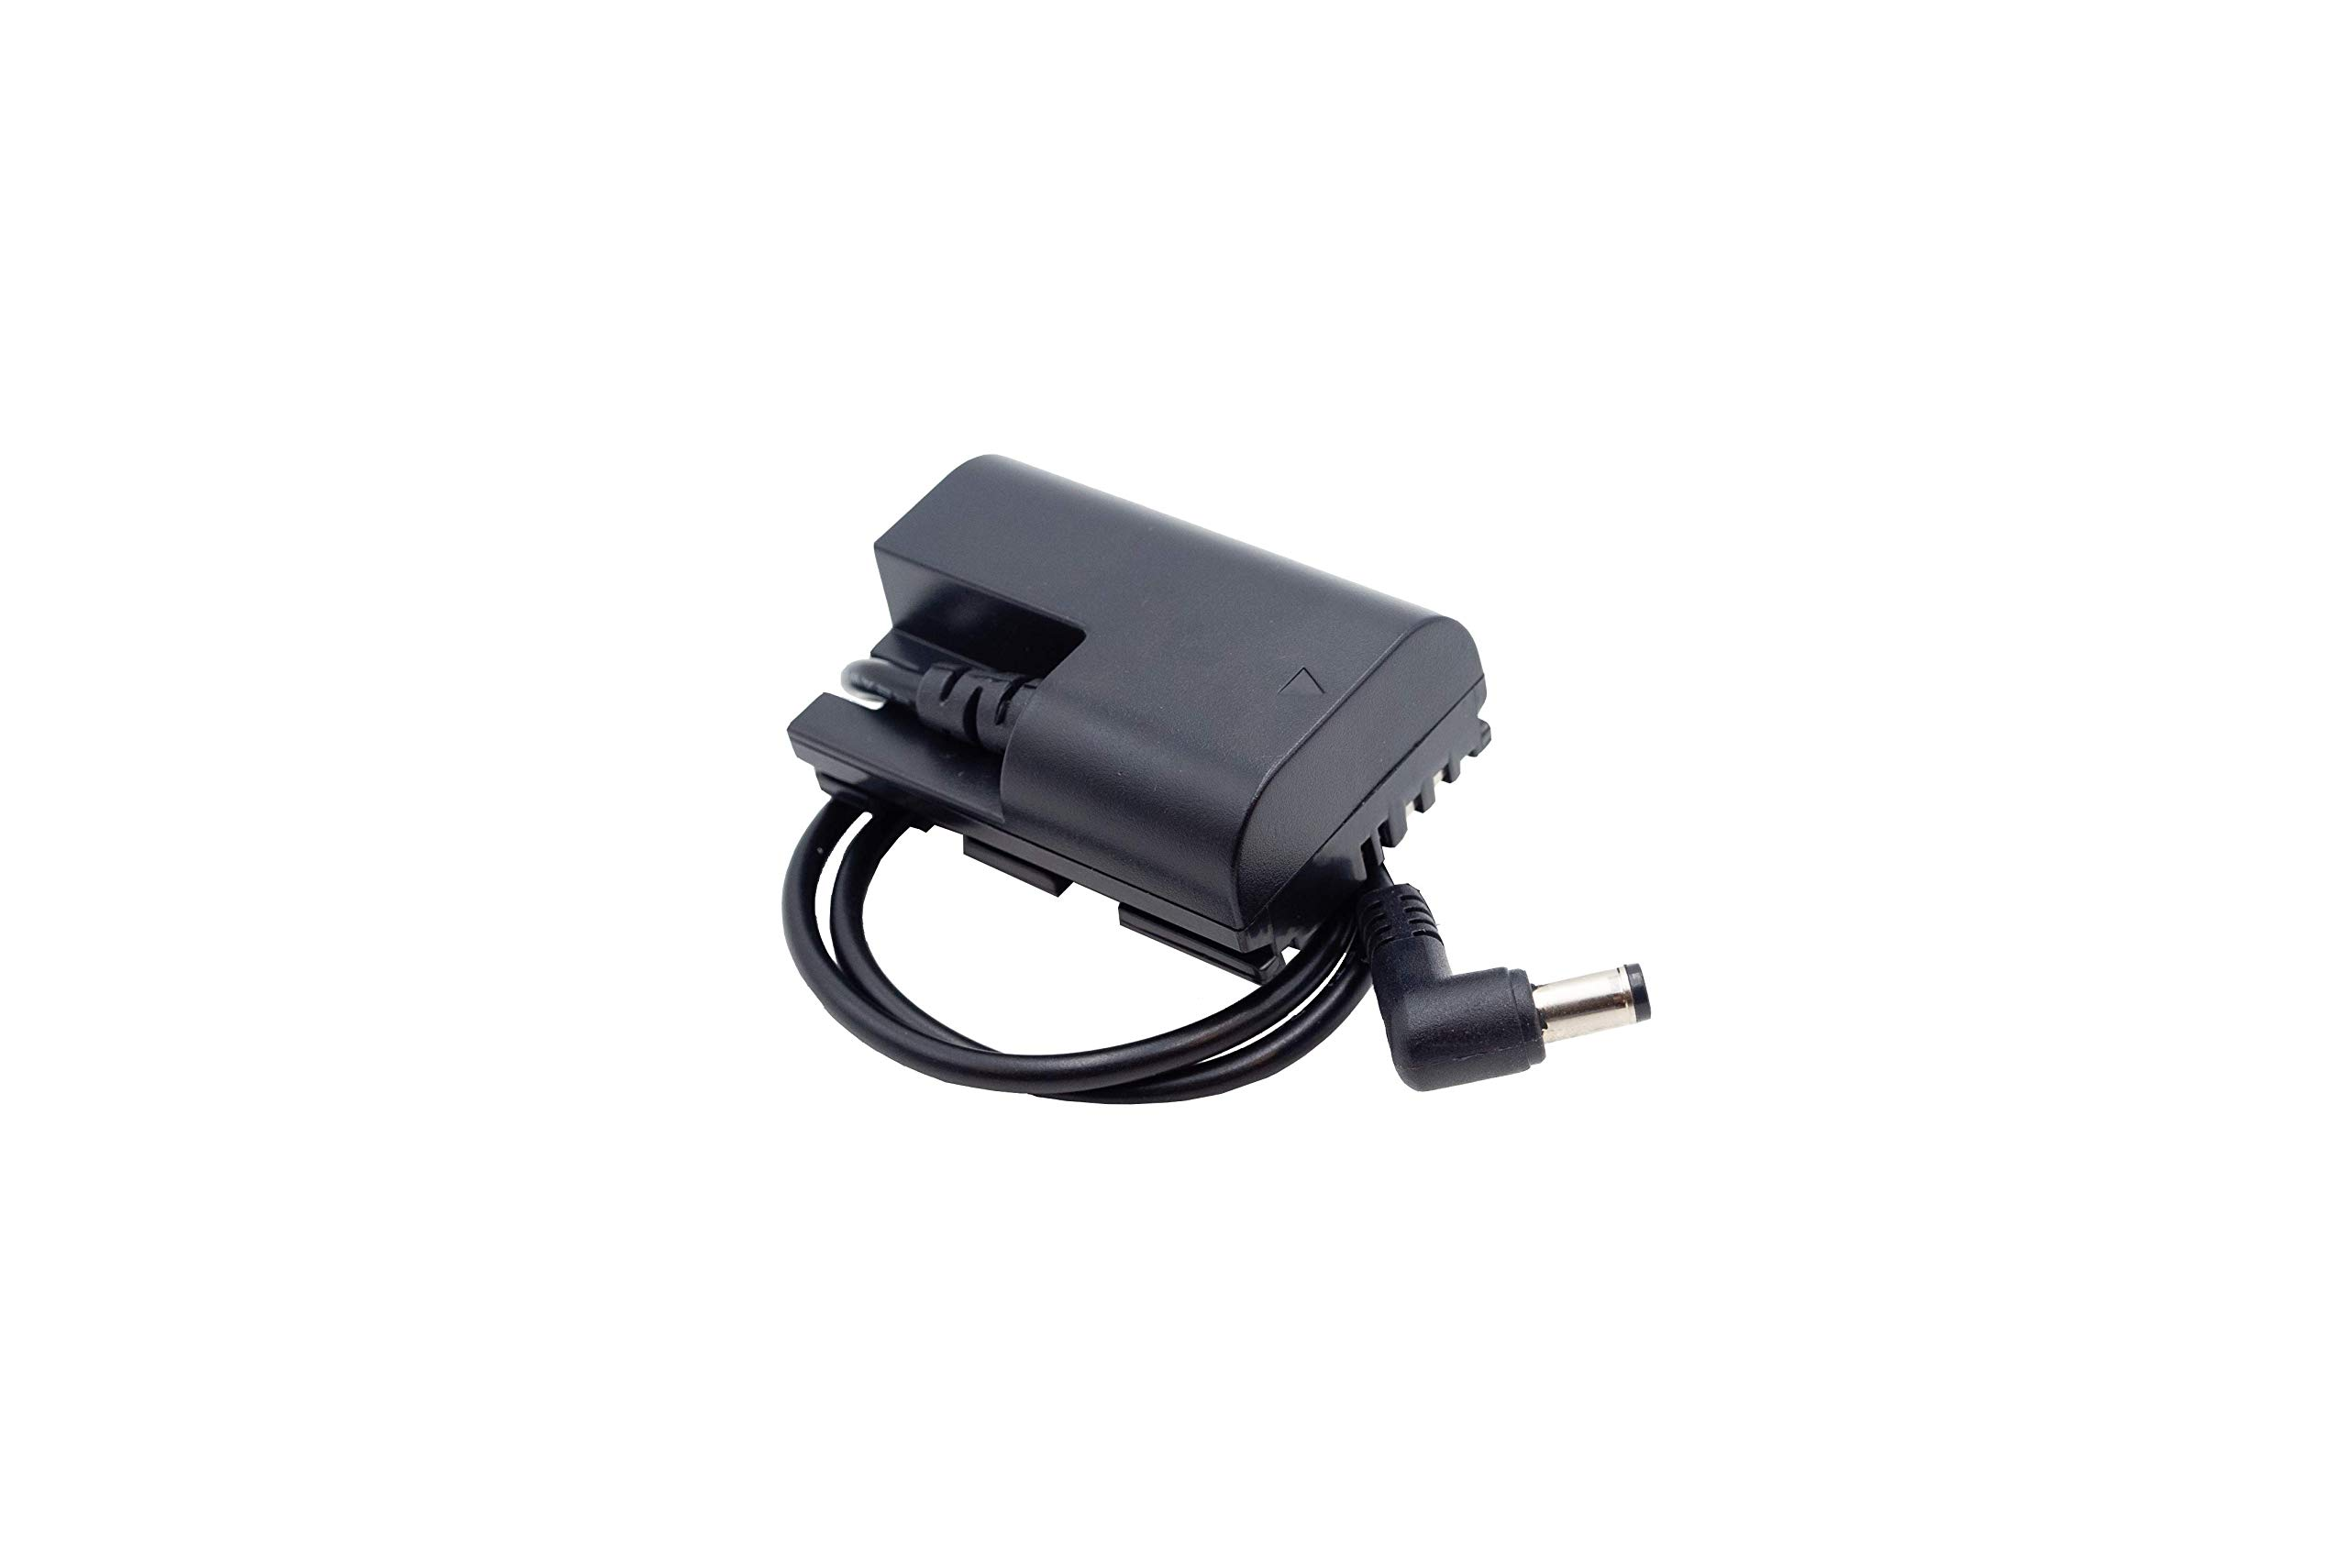 Power Junkie Adapter Canon (LP-E6) - Dummy Battery for Canon Cameras and Black Magic Pocket Camera 4K - by Blind Spot